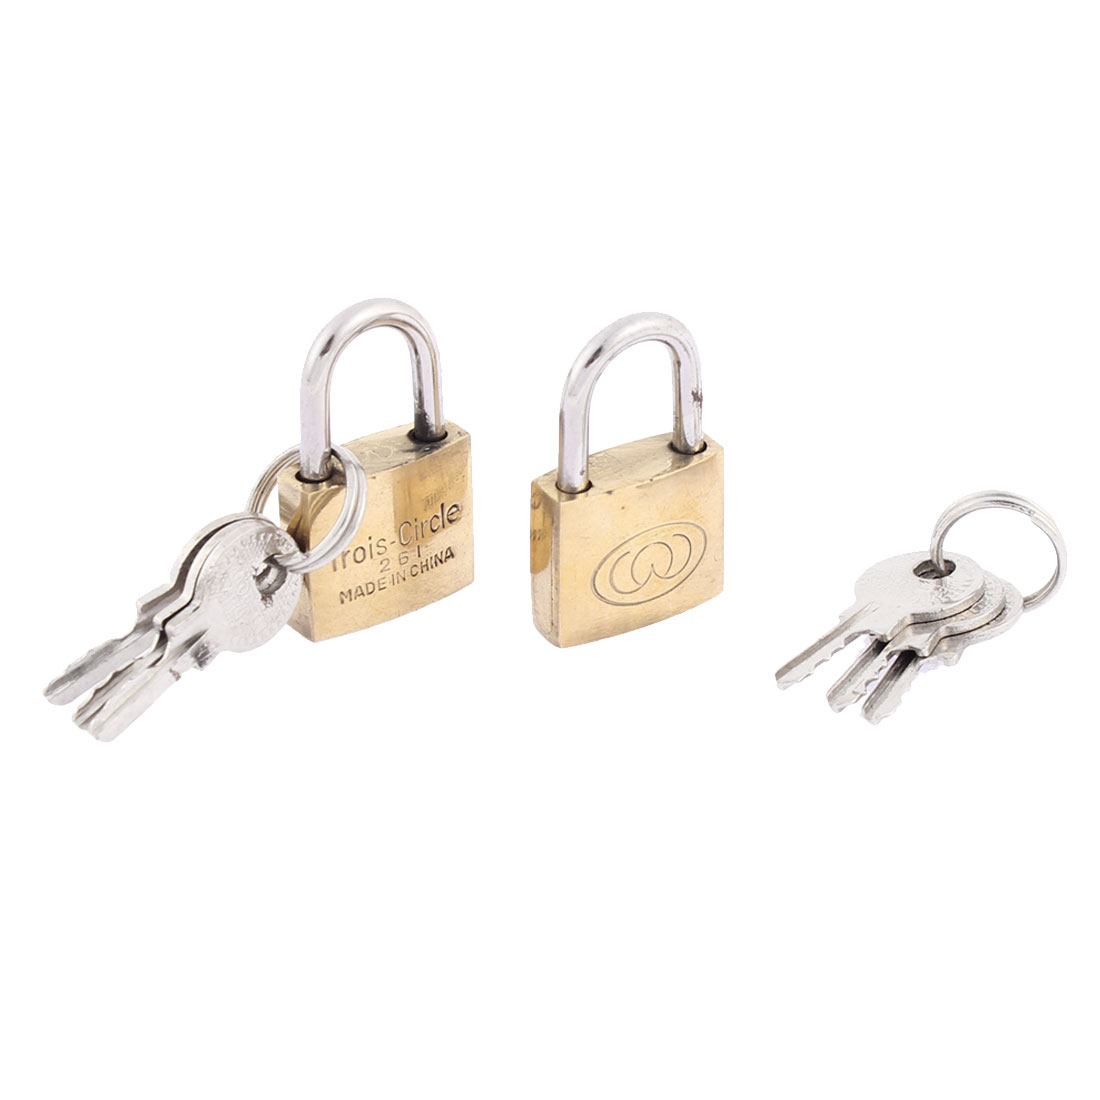 Suitcase Luggage Security Padlock Brass Tone 2pcs w Keys